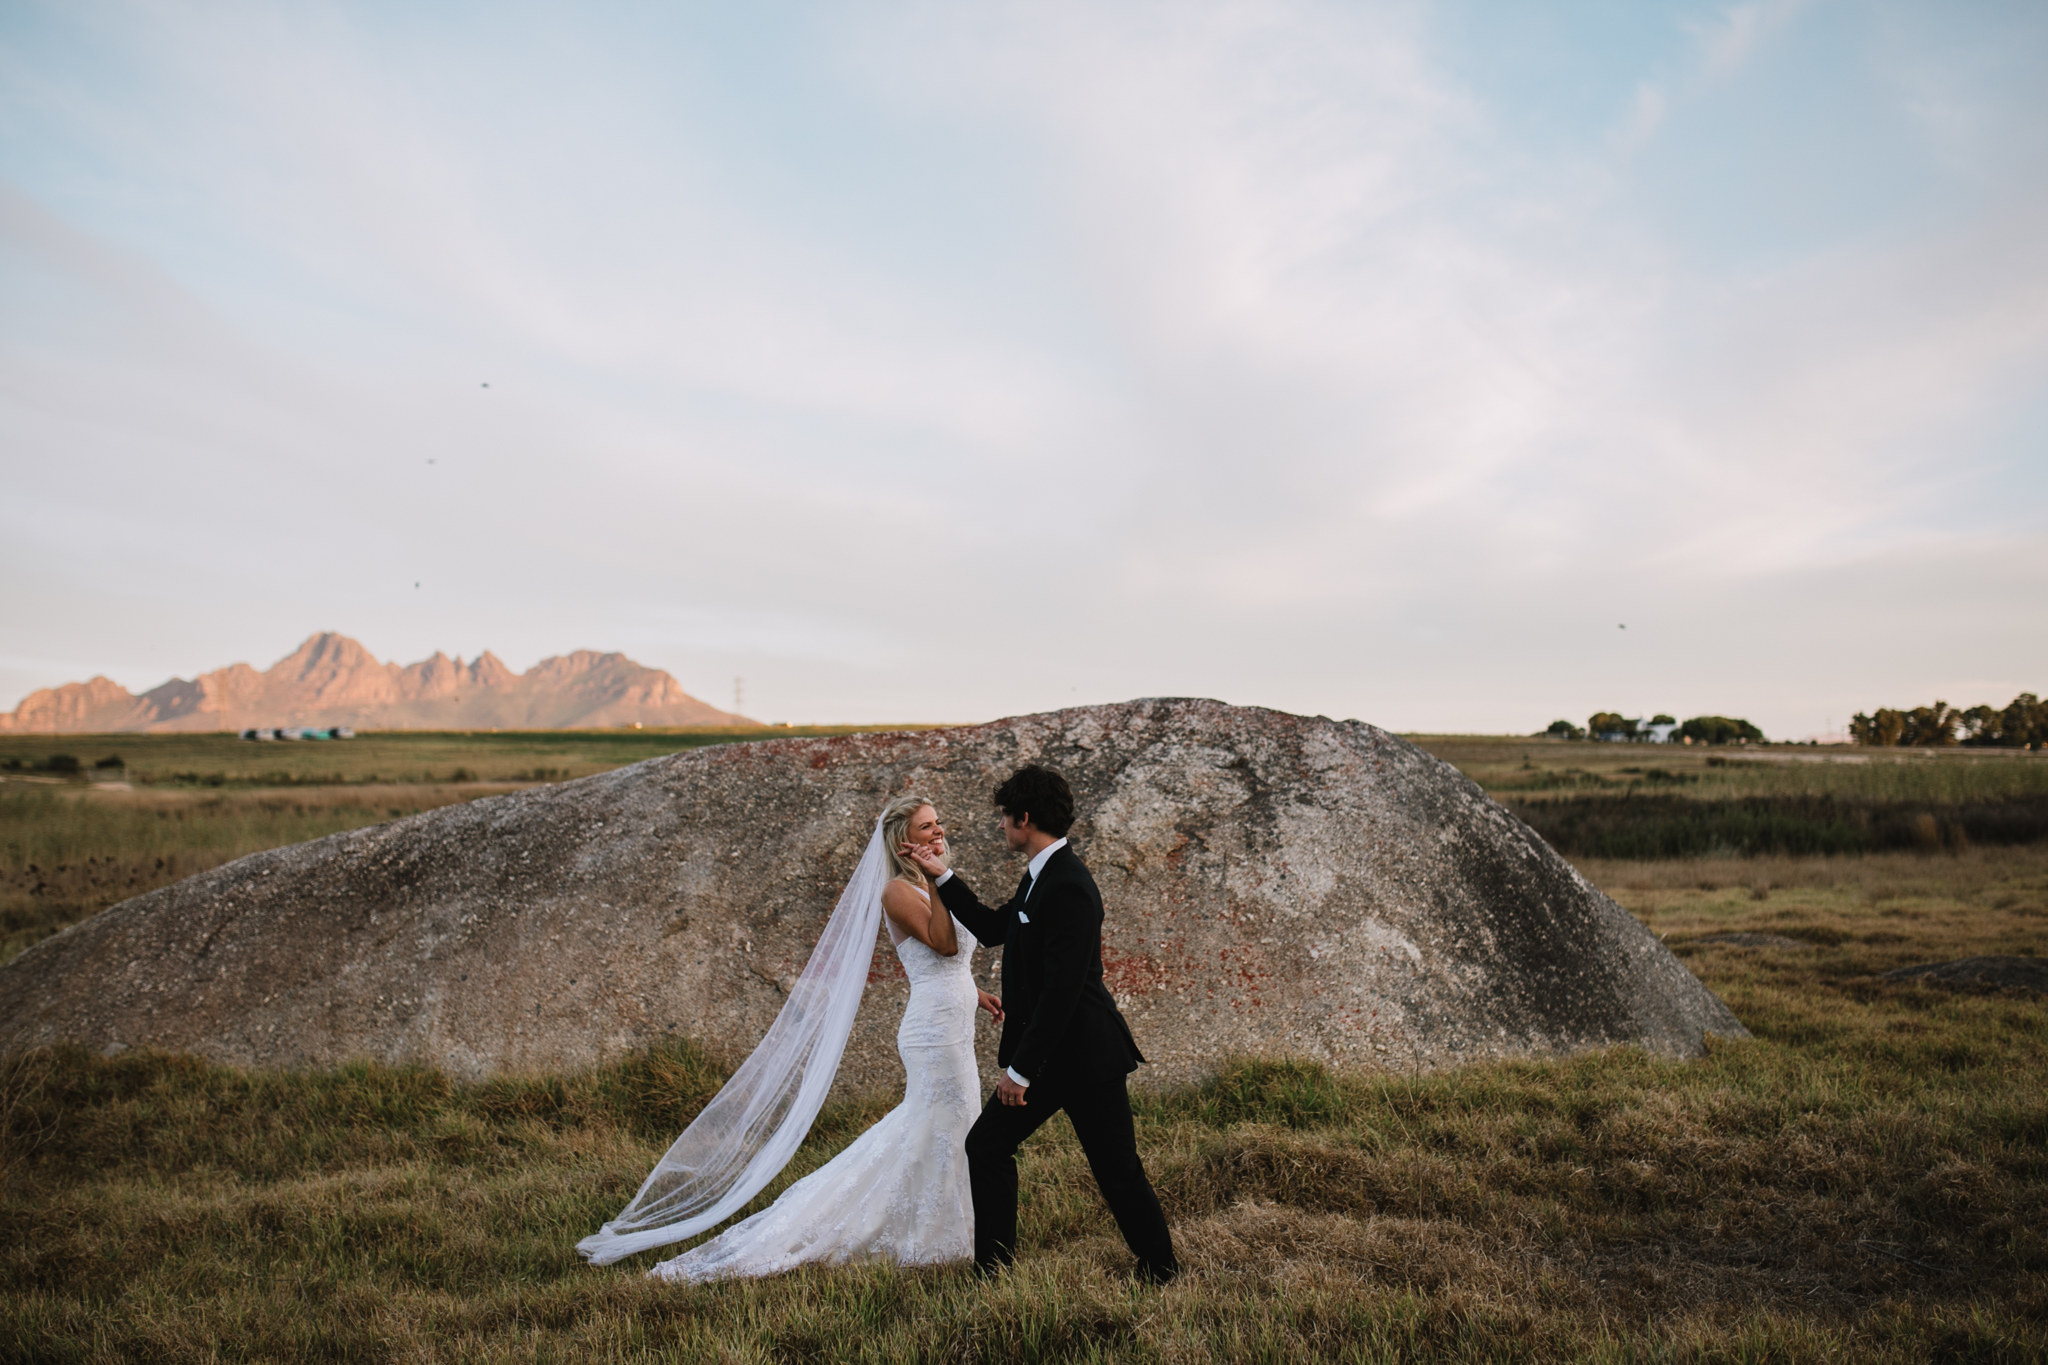 heisvisual-wedding-photographers-spier-wine-farm-stellenbosch264.jpg